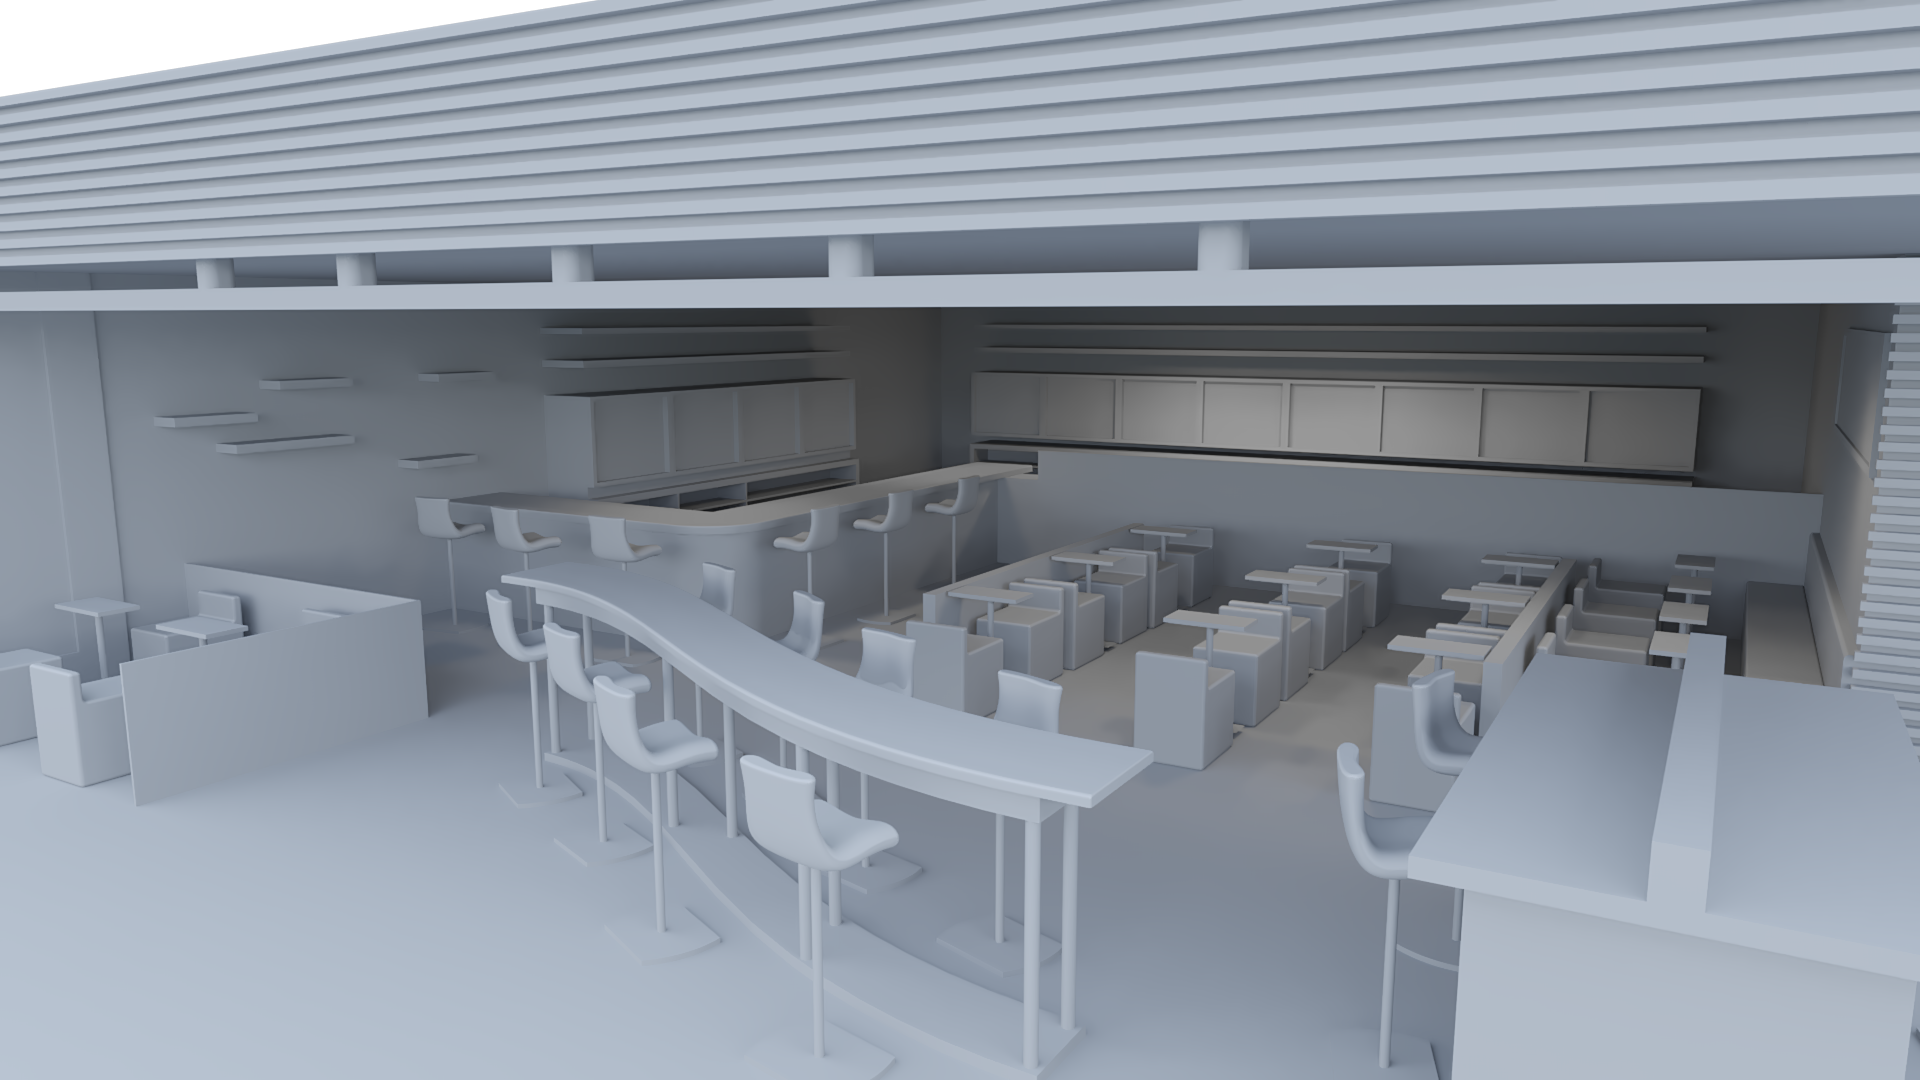 interior bar rendering